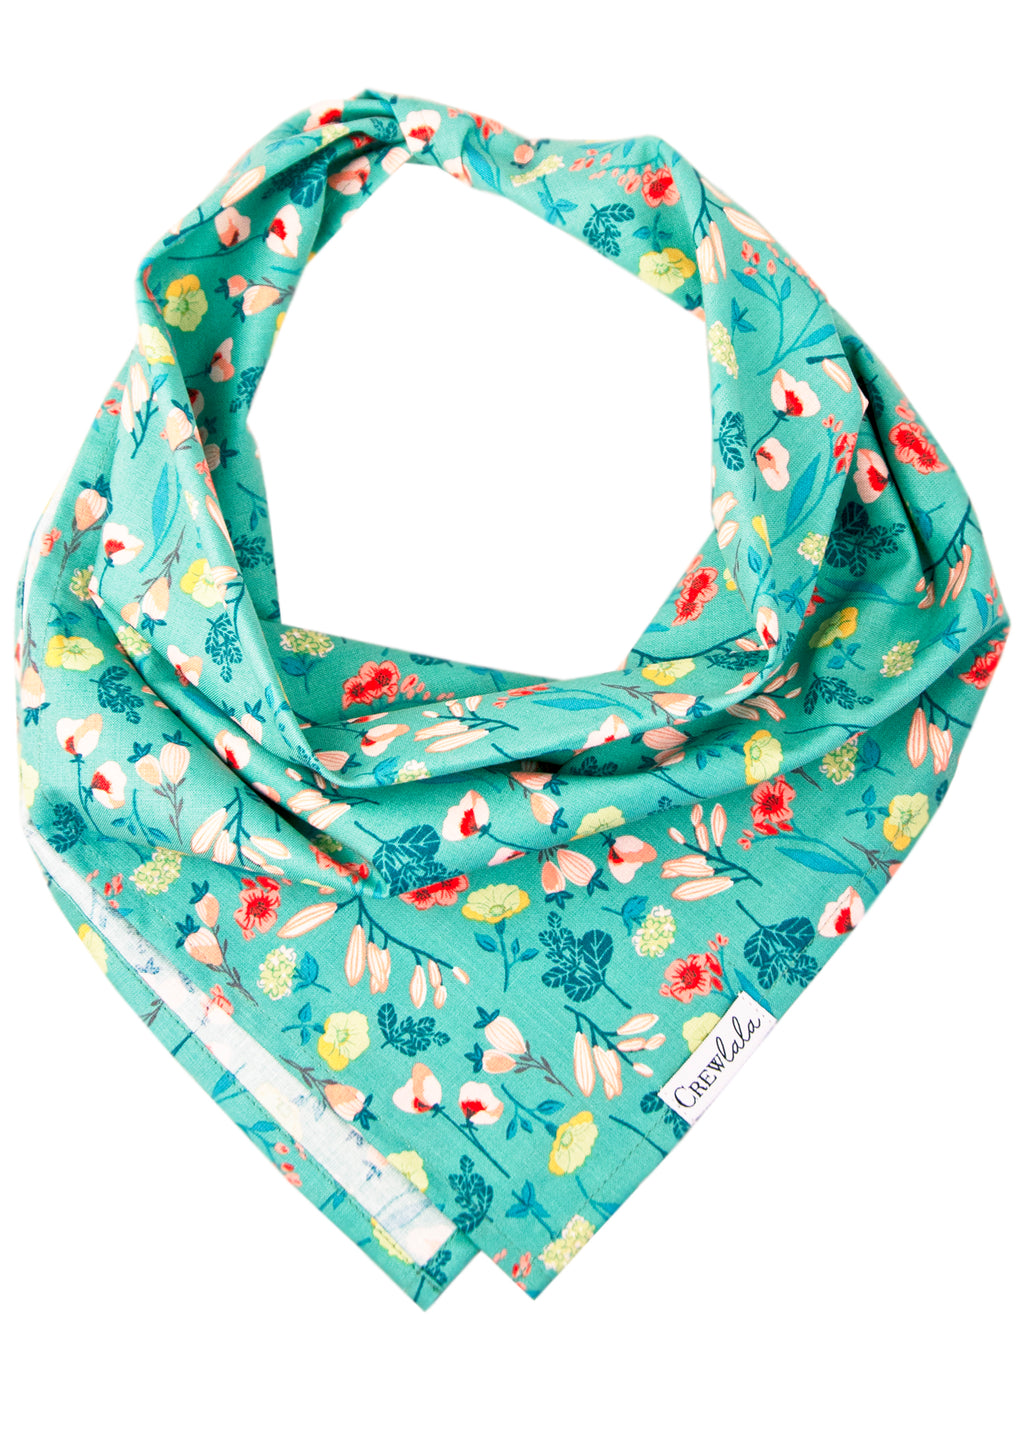 Blooming Wildflowers Dog Bandana